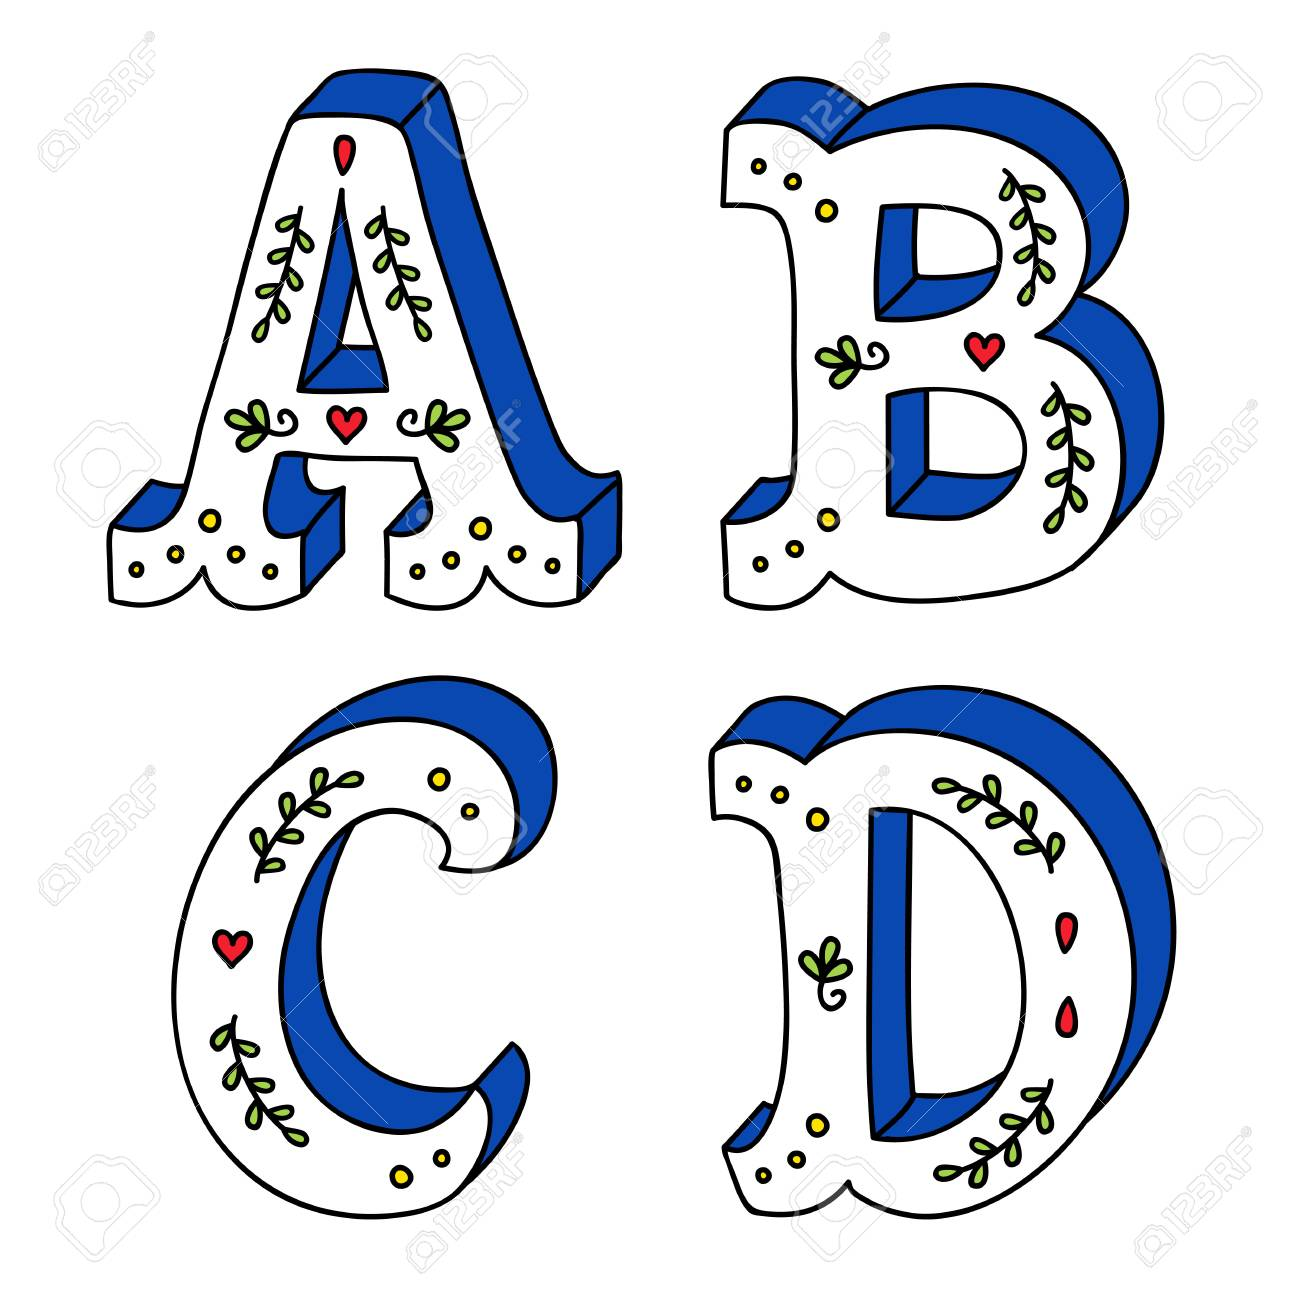 hand lettering drawing set of cute letters with decorative ornaments rh 123rf com ornaments vector illustration ornament vector file for cnc v-bit carving